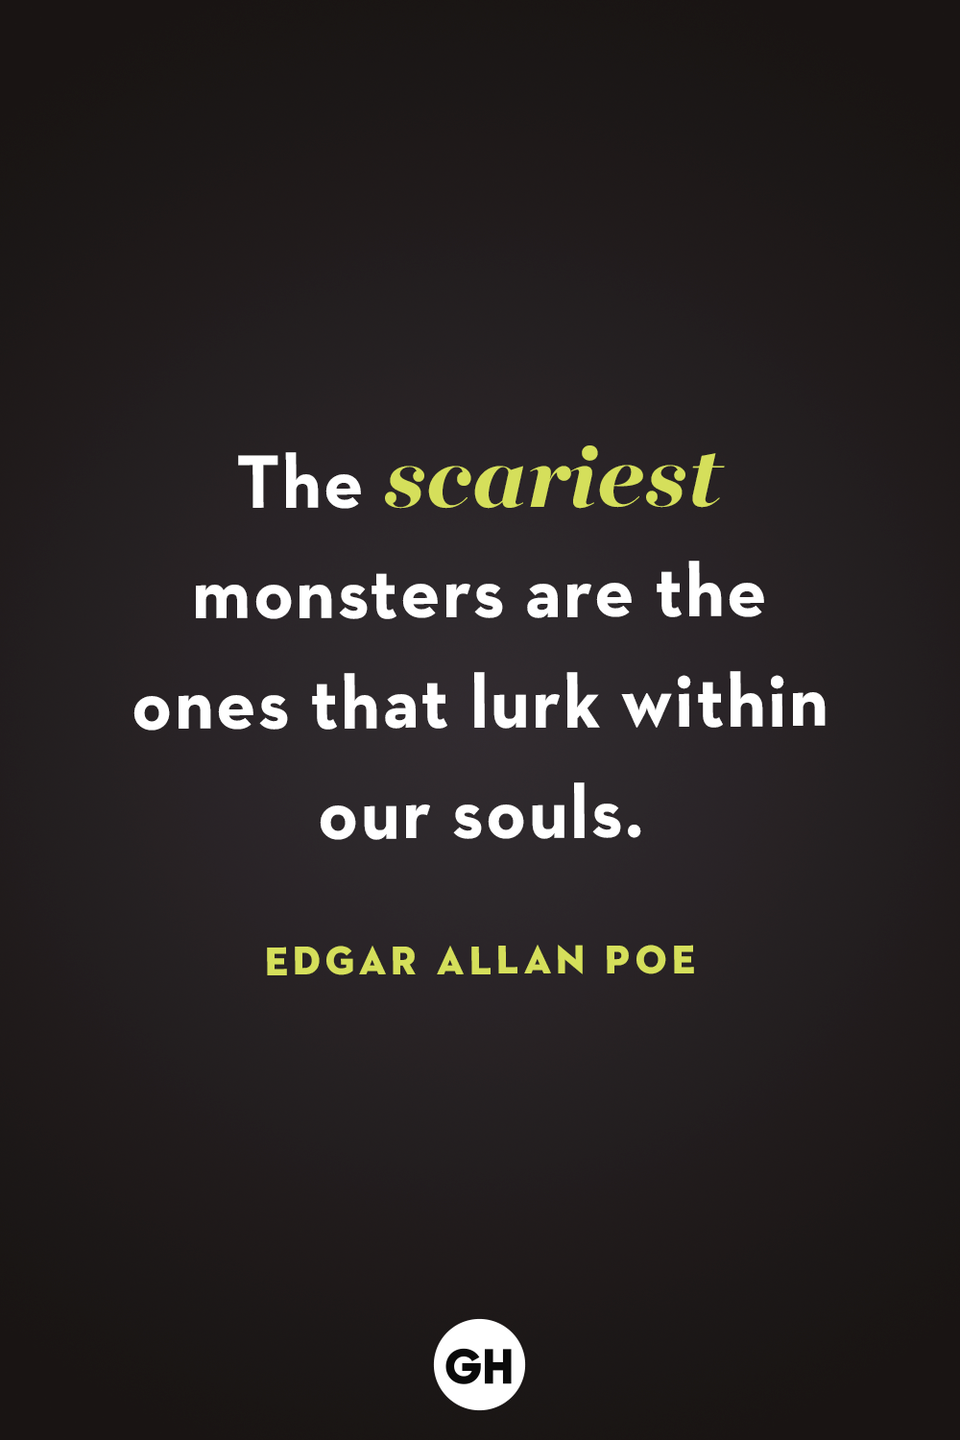 <p>The scariest monsters are the ones that lurk within our souls. </p>